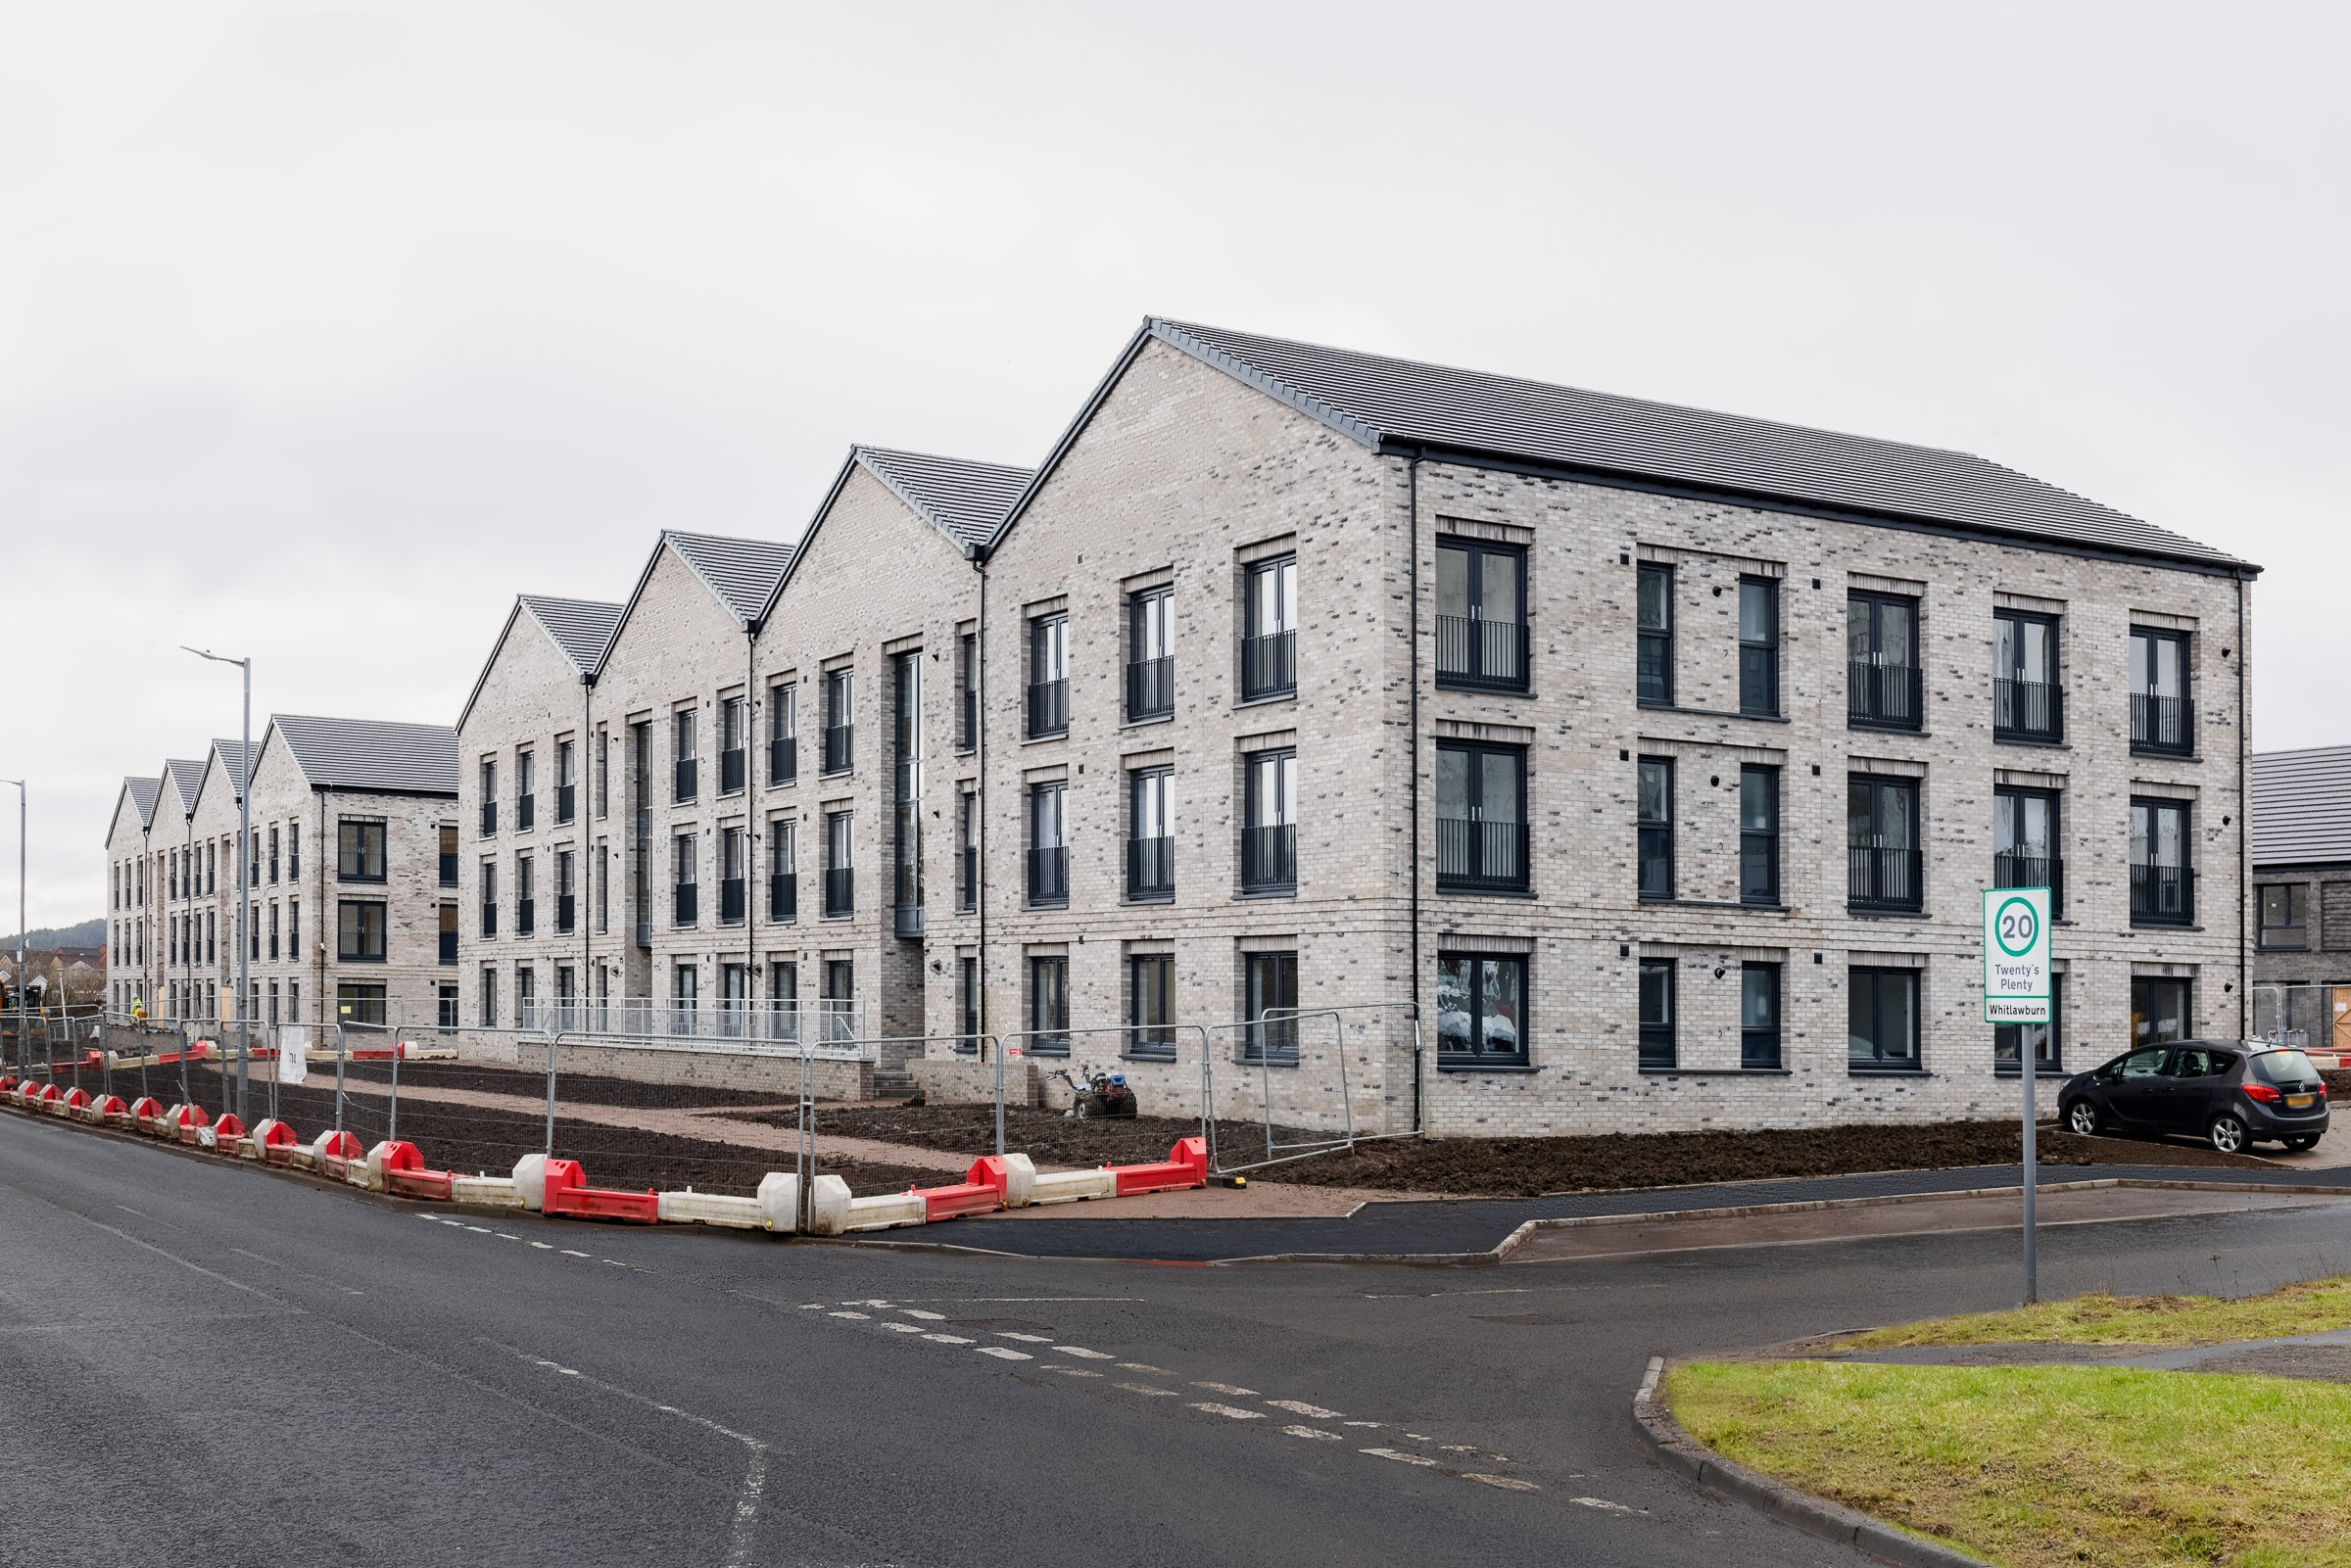 Milestone is reached as hub South West oversees handover  of 200 new homes in South Lanarkshire and North Ayrshire